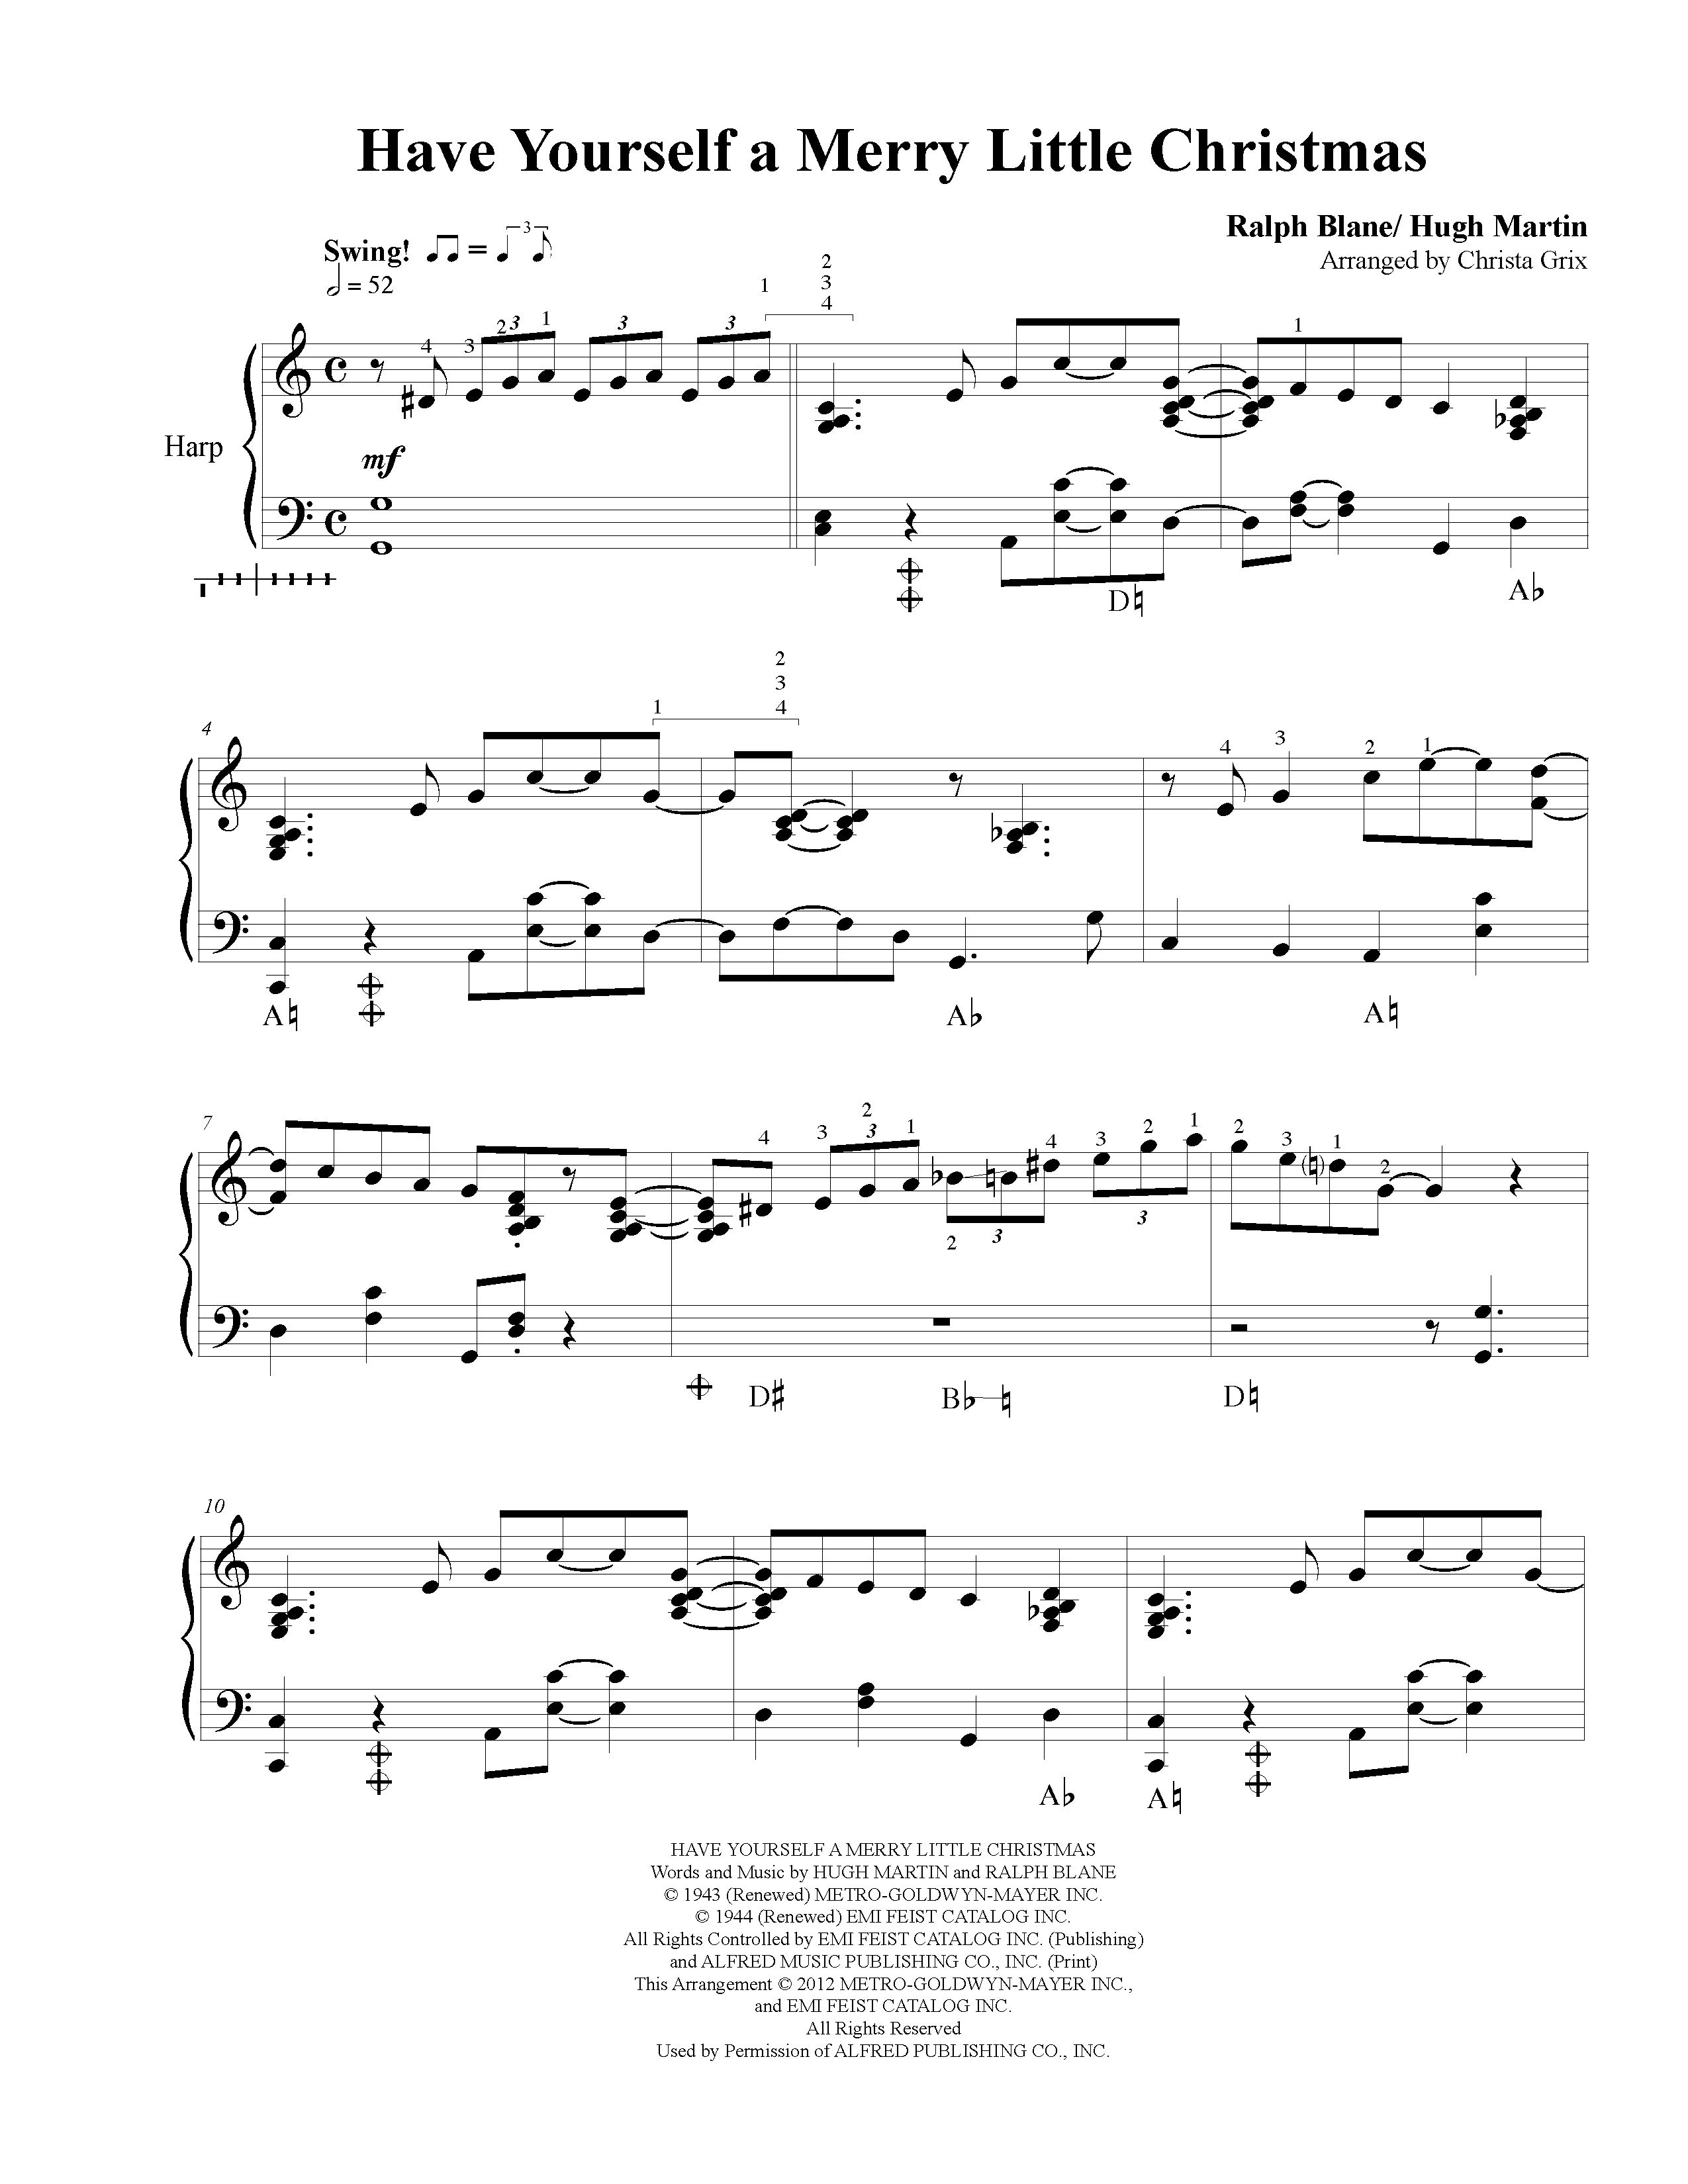 have yourself a merry little christmas sheet music - Have Yourself A Merry Little Christmas